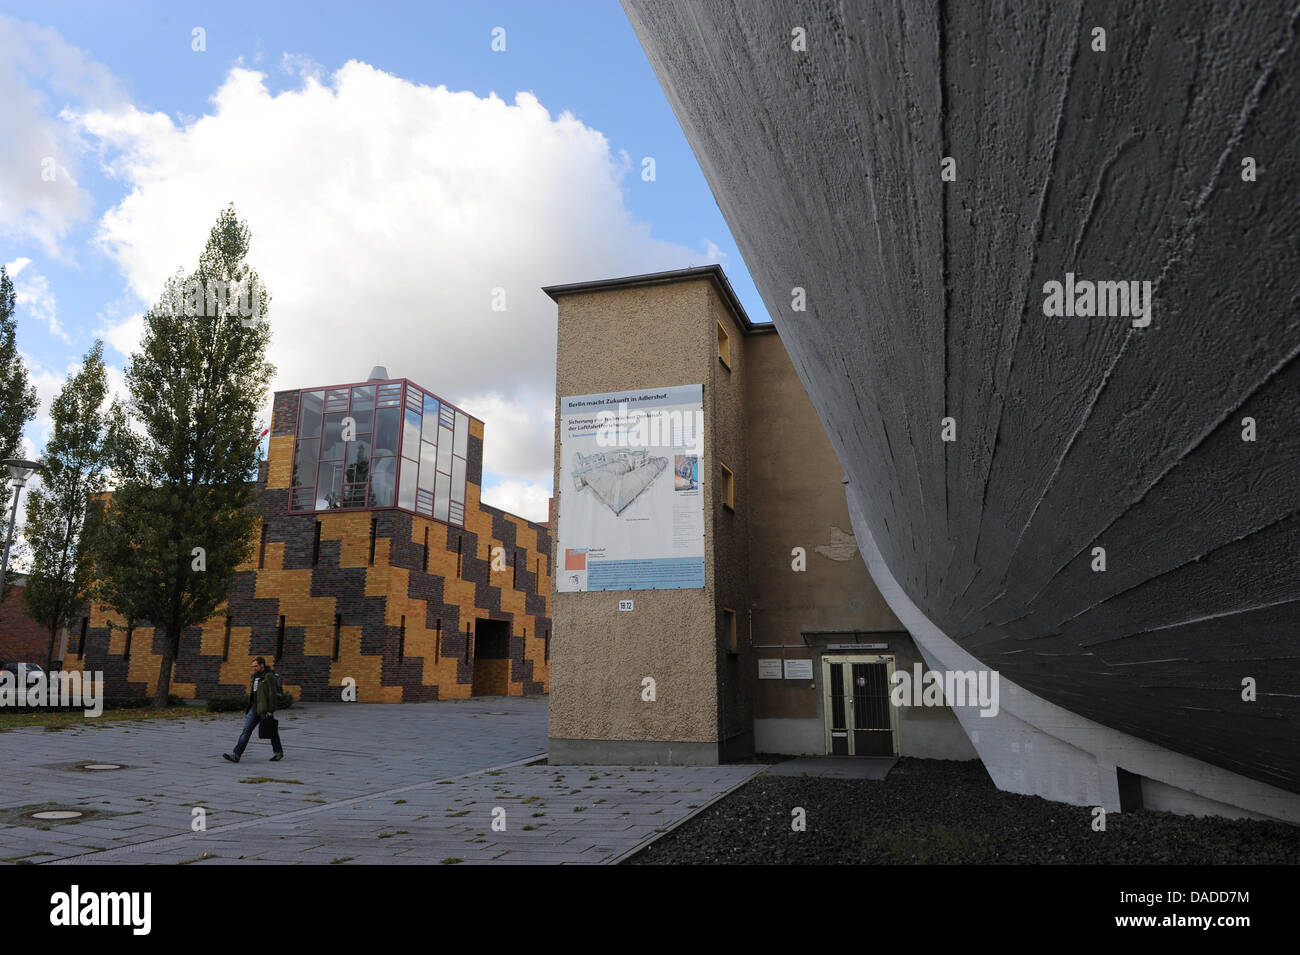 The large windtunnel (R) is seen at the Aerodynamic Park on the campus of Humboldt University in Berlin-Adlershof - Stock Image